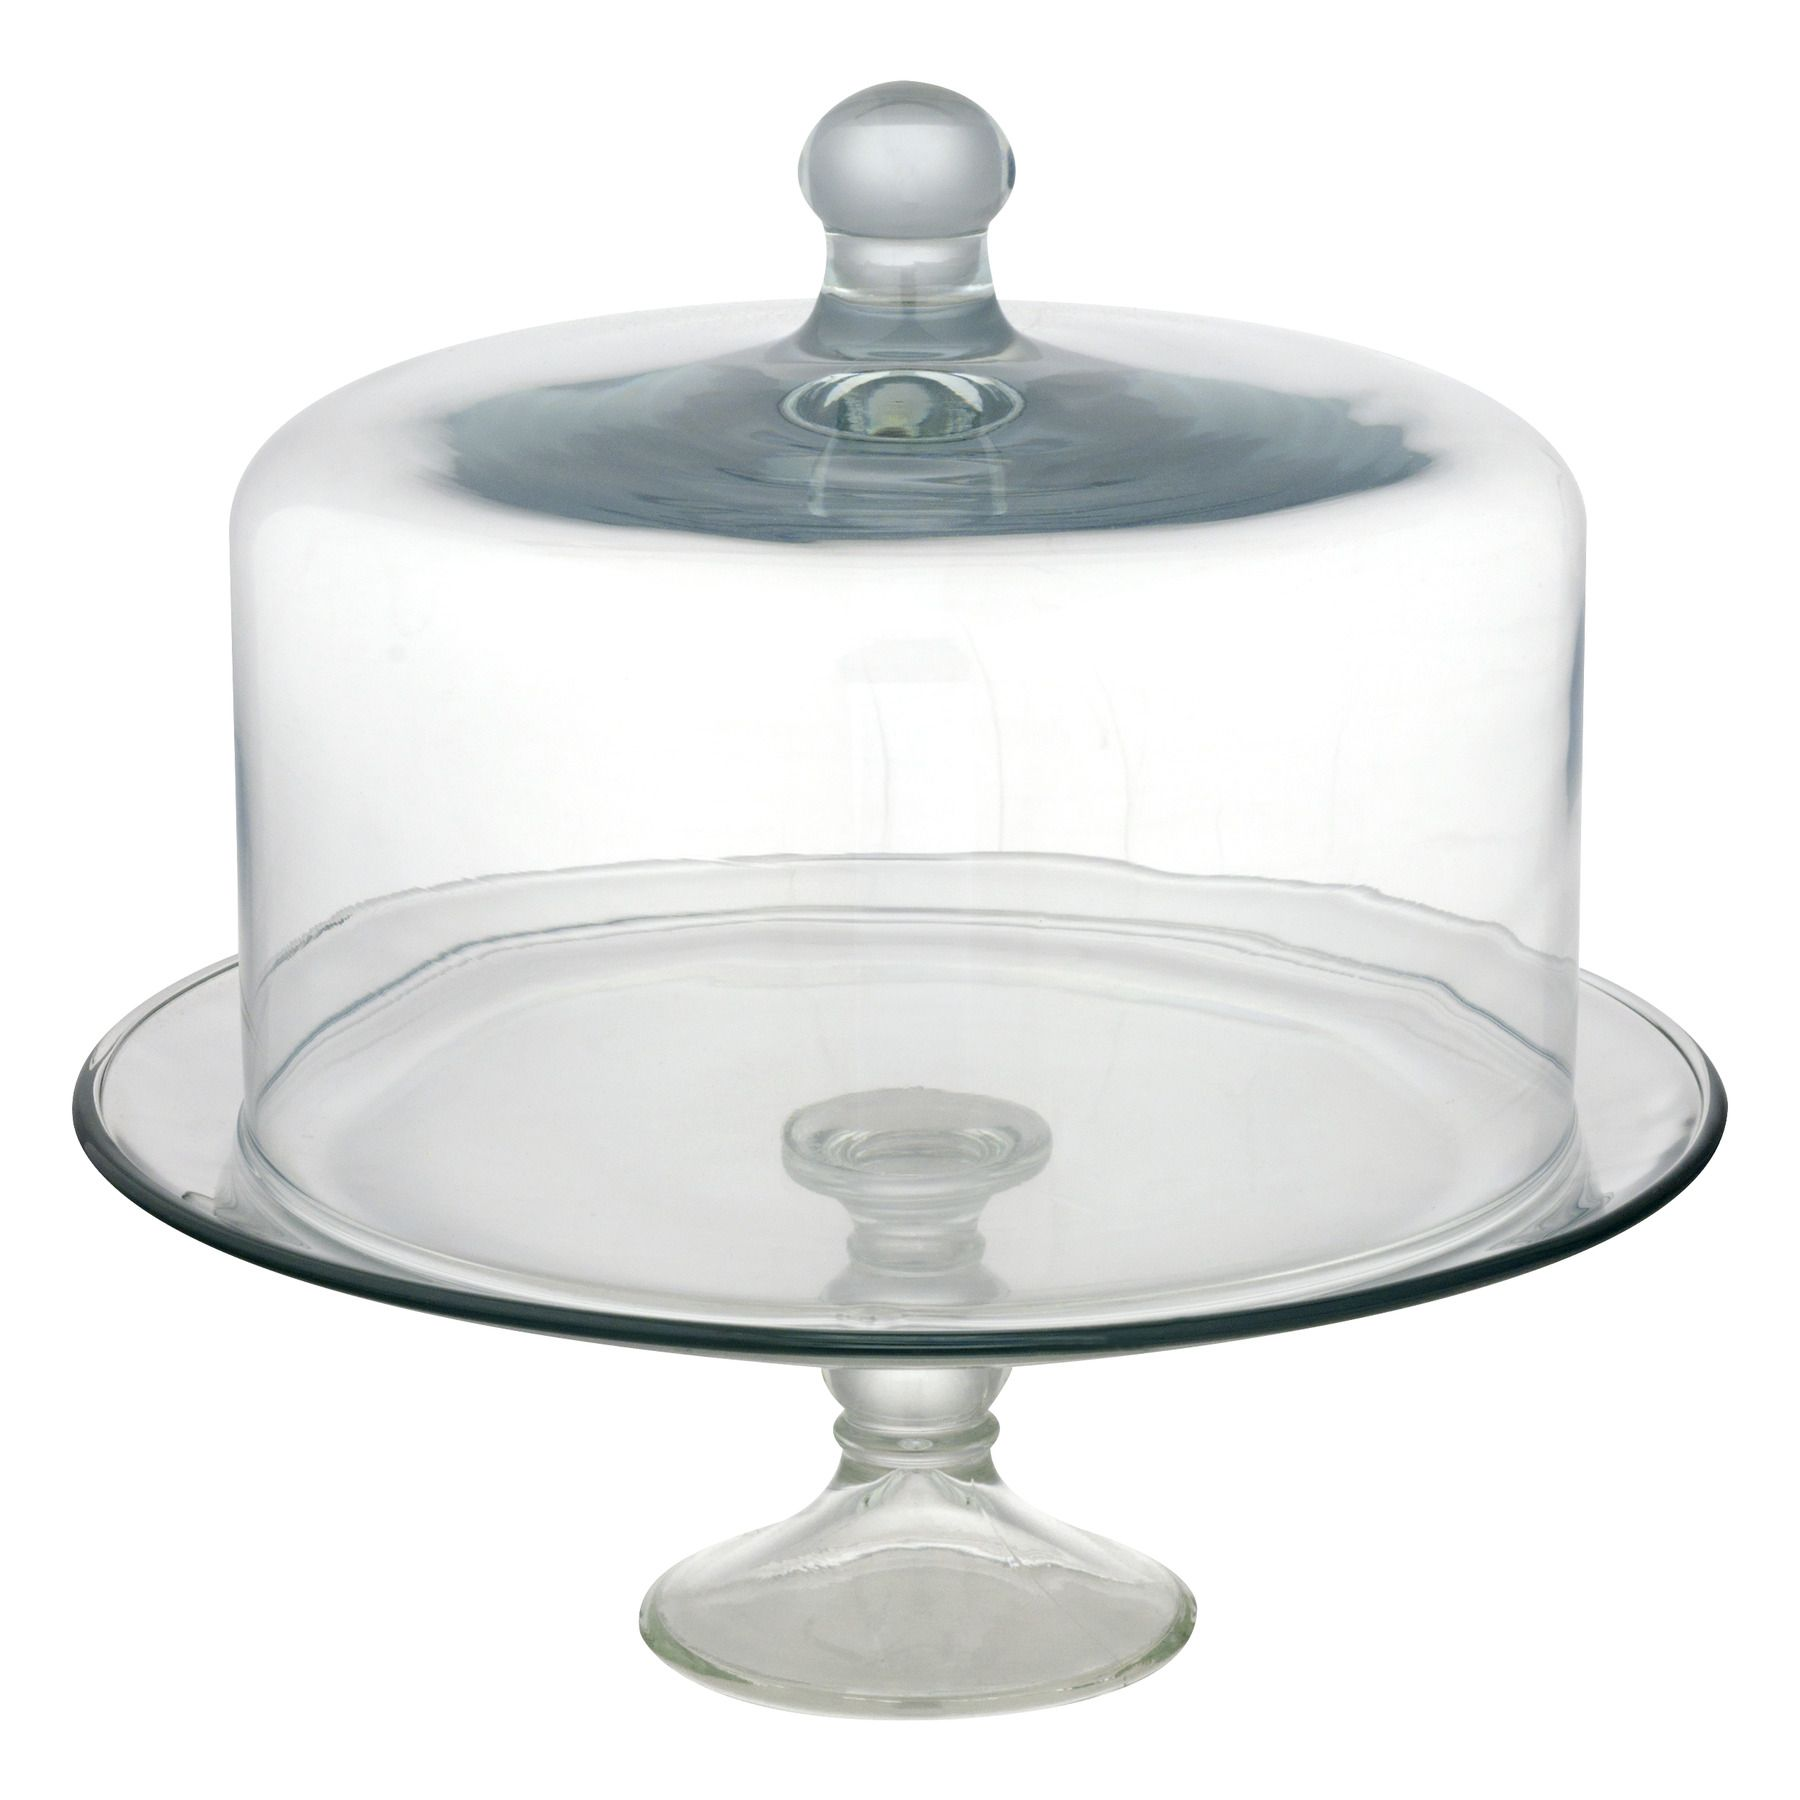 Home In 2020 Cake Stand With Dome Glass Cake Stand Glass Cakes